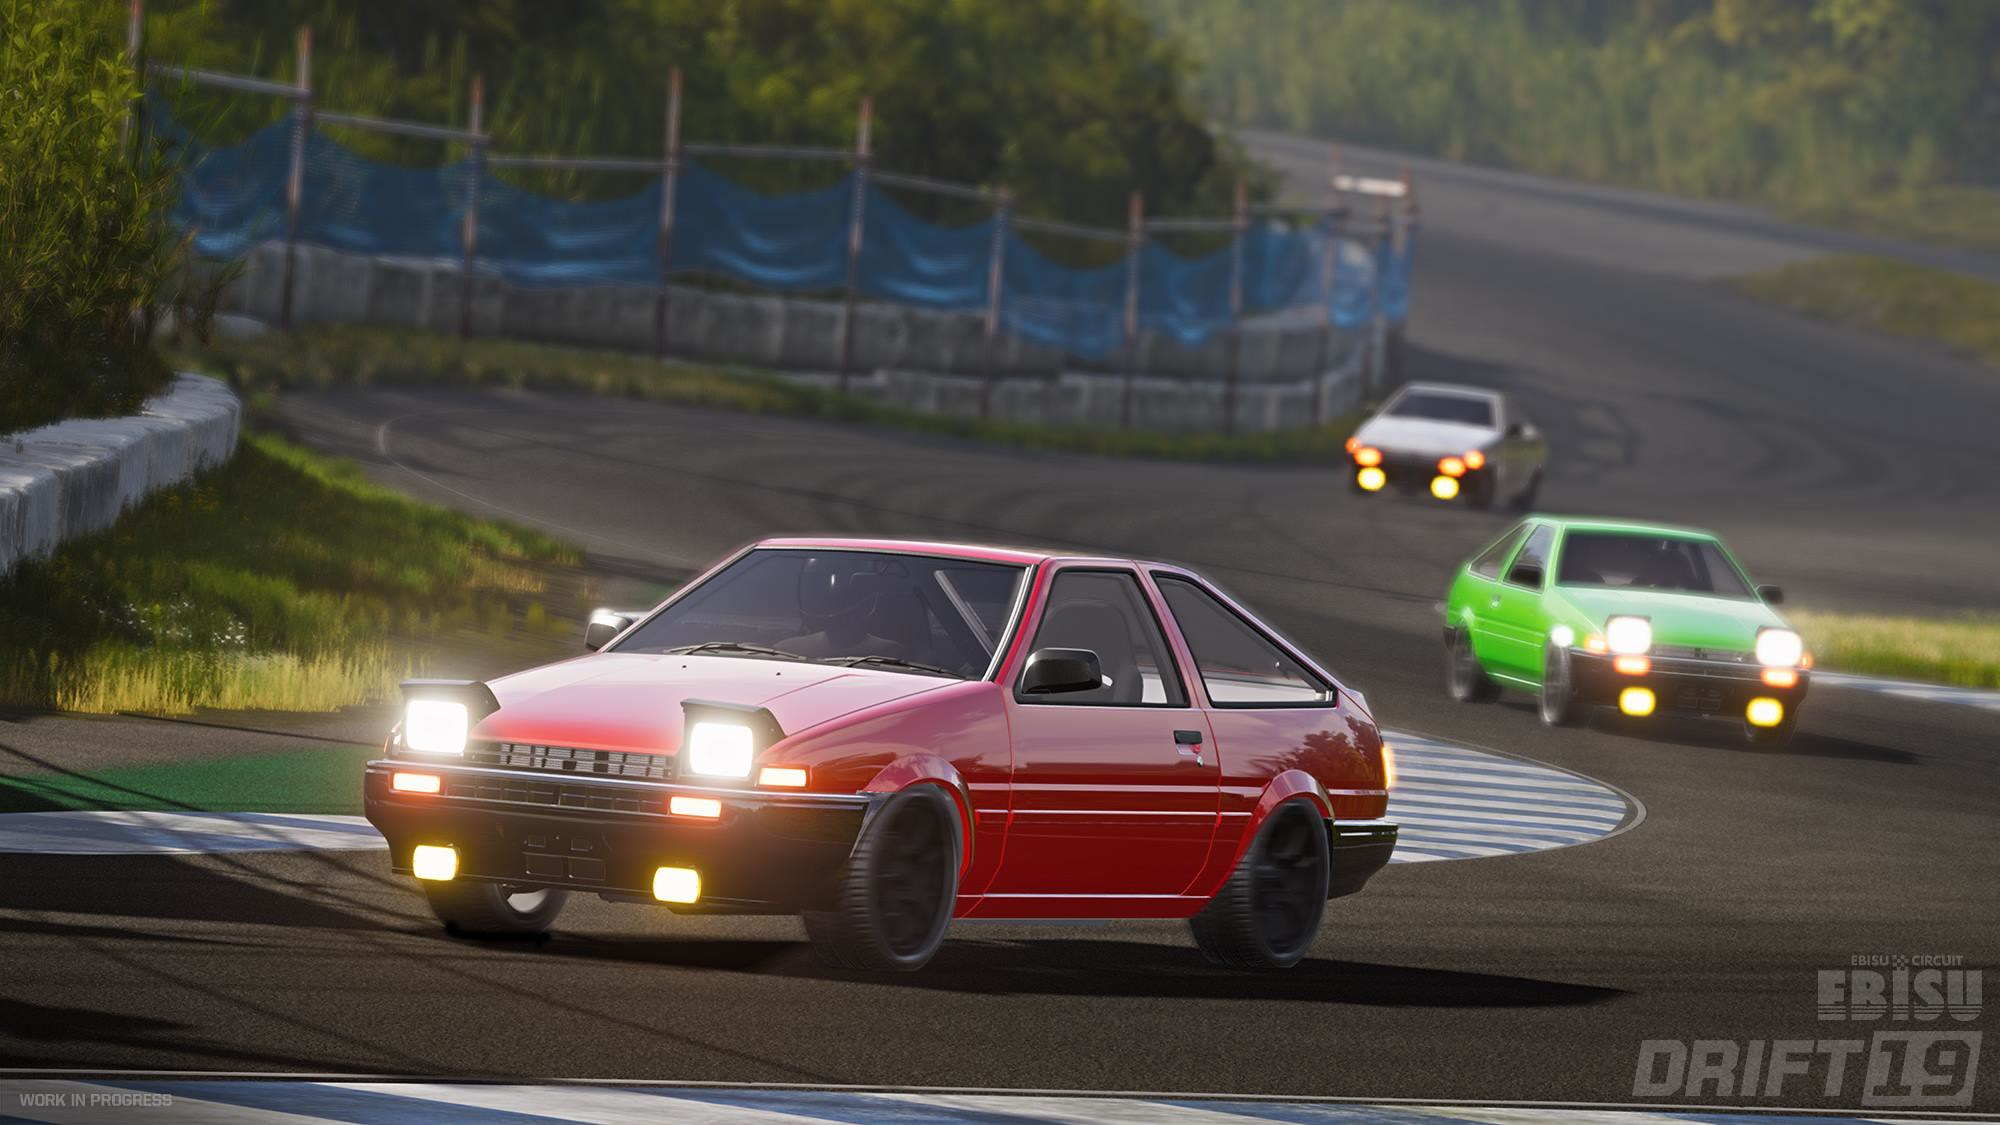 Drift 19 Simulator 13